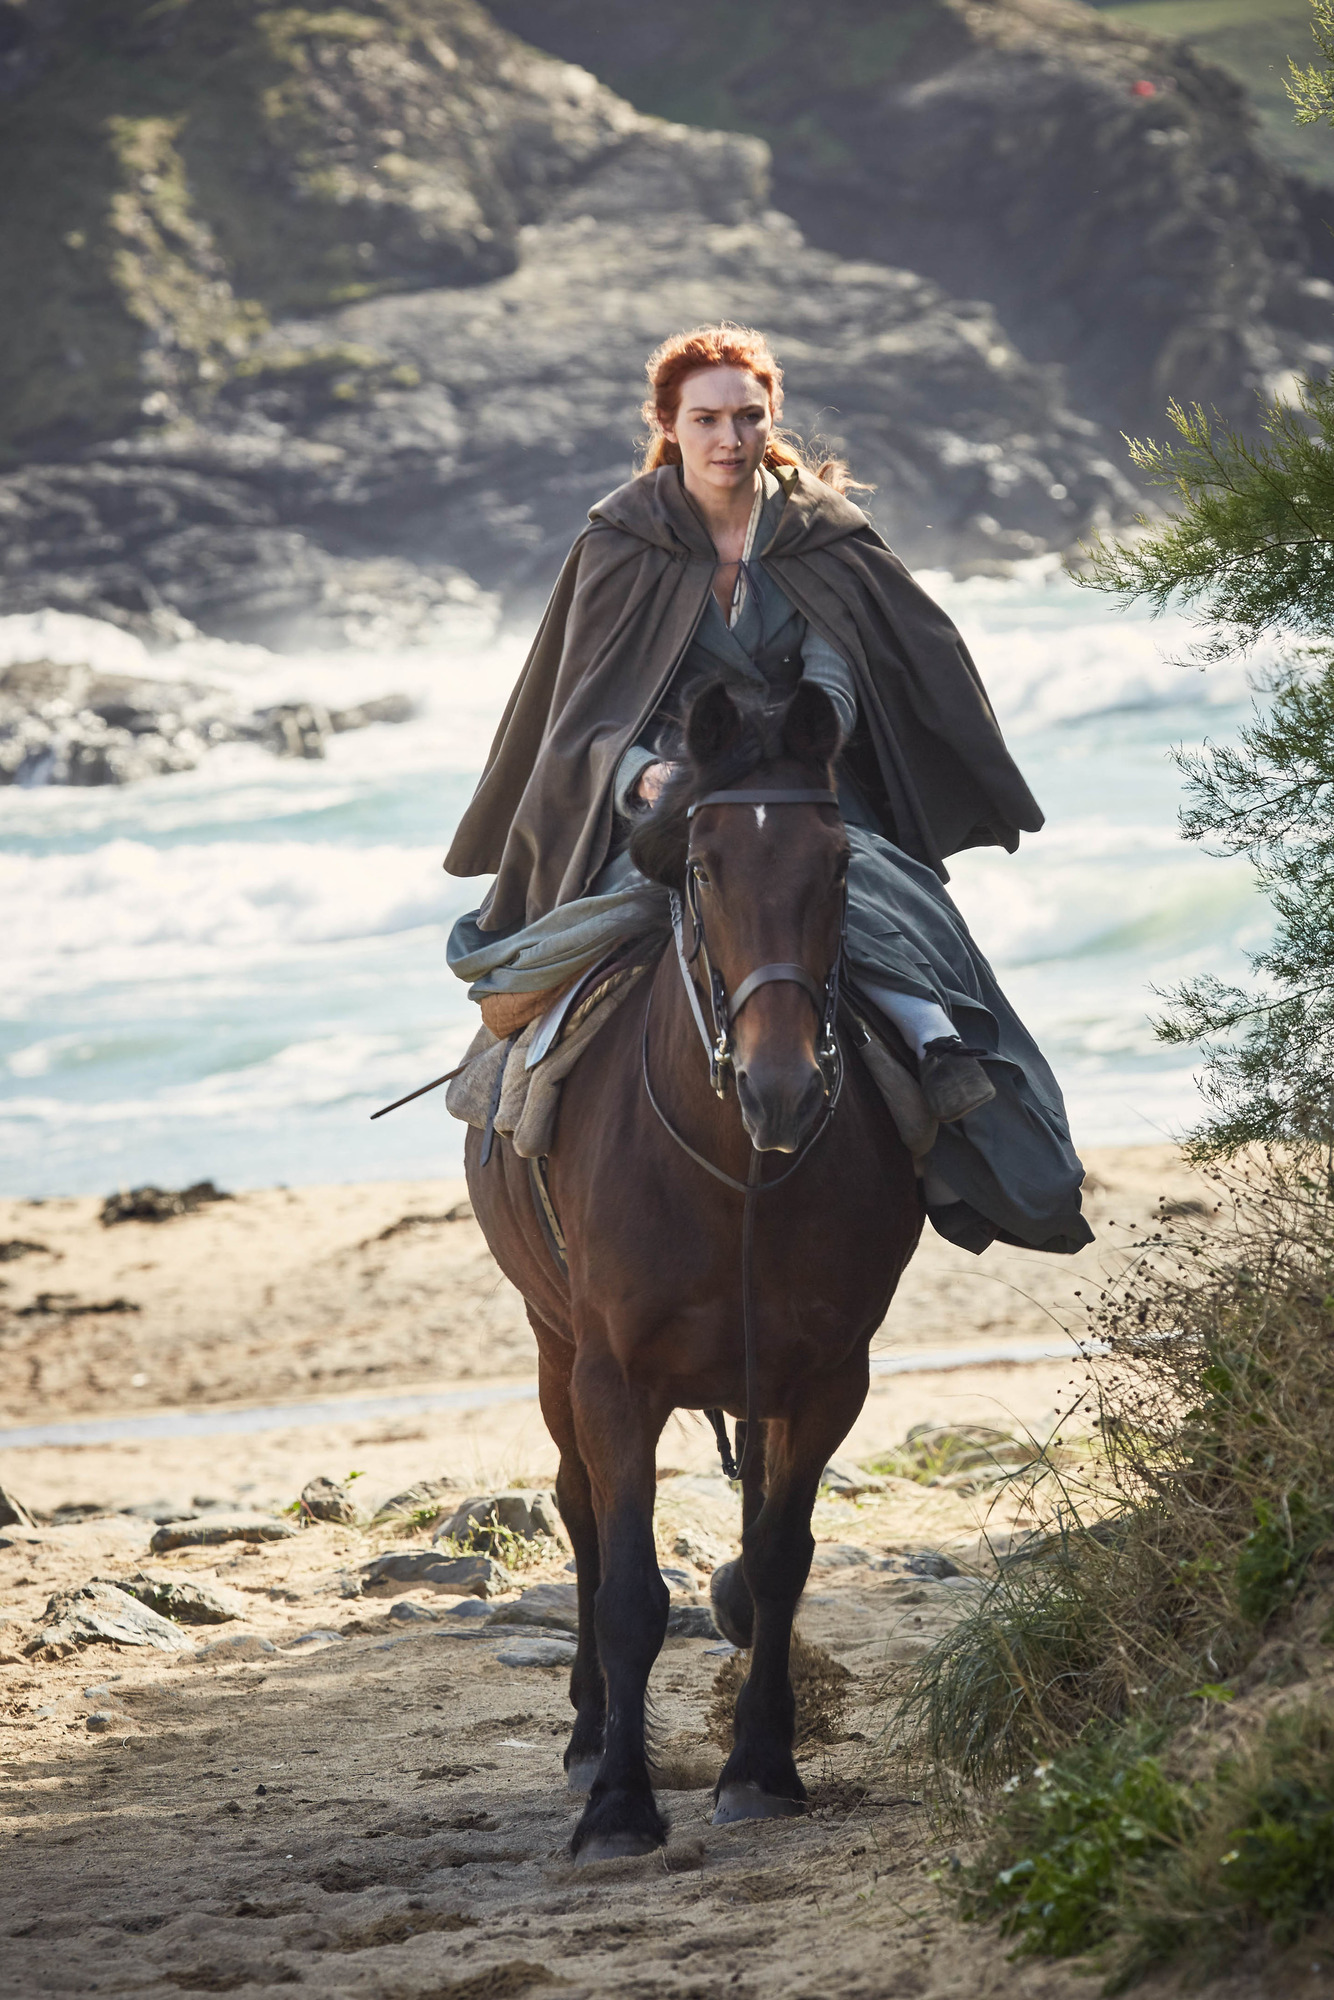 WARNING: Embargoed for publication until 00:00:01 on 06/06/2017 - Programme Name: Poldark S3 - TX: n/a - Episode: Poldark S3 - Episode 1 (No. 1) - Picture Shows: **STRICTLY EMBARGOED UNTIL TUESDAY 6TH JUNE** Demelza ((ELEANOR TOMLINSON) - (C) Mammoth Screen - Photographer: Robert Viglasky